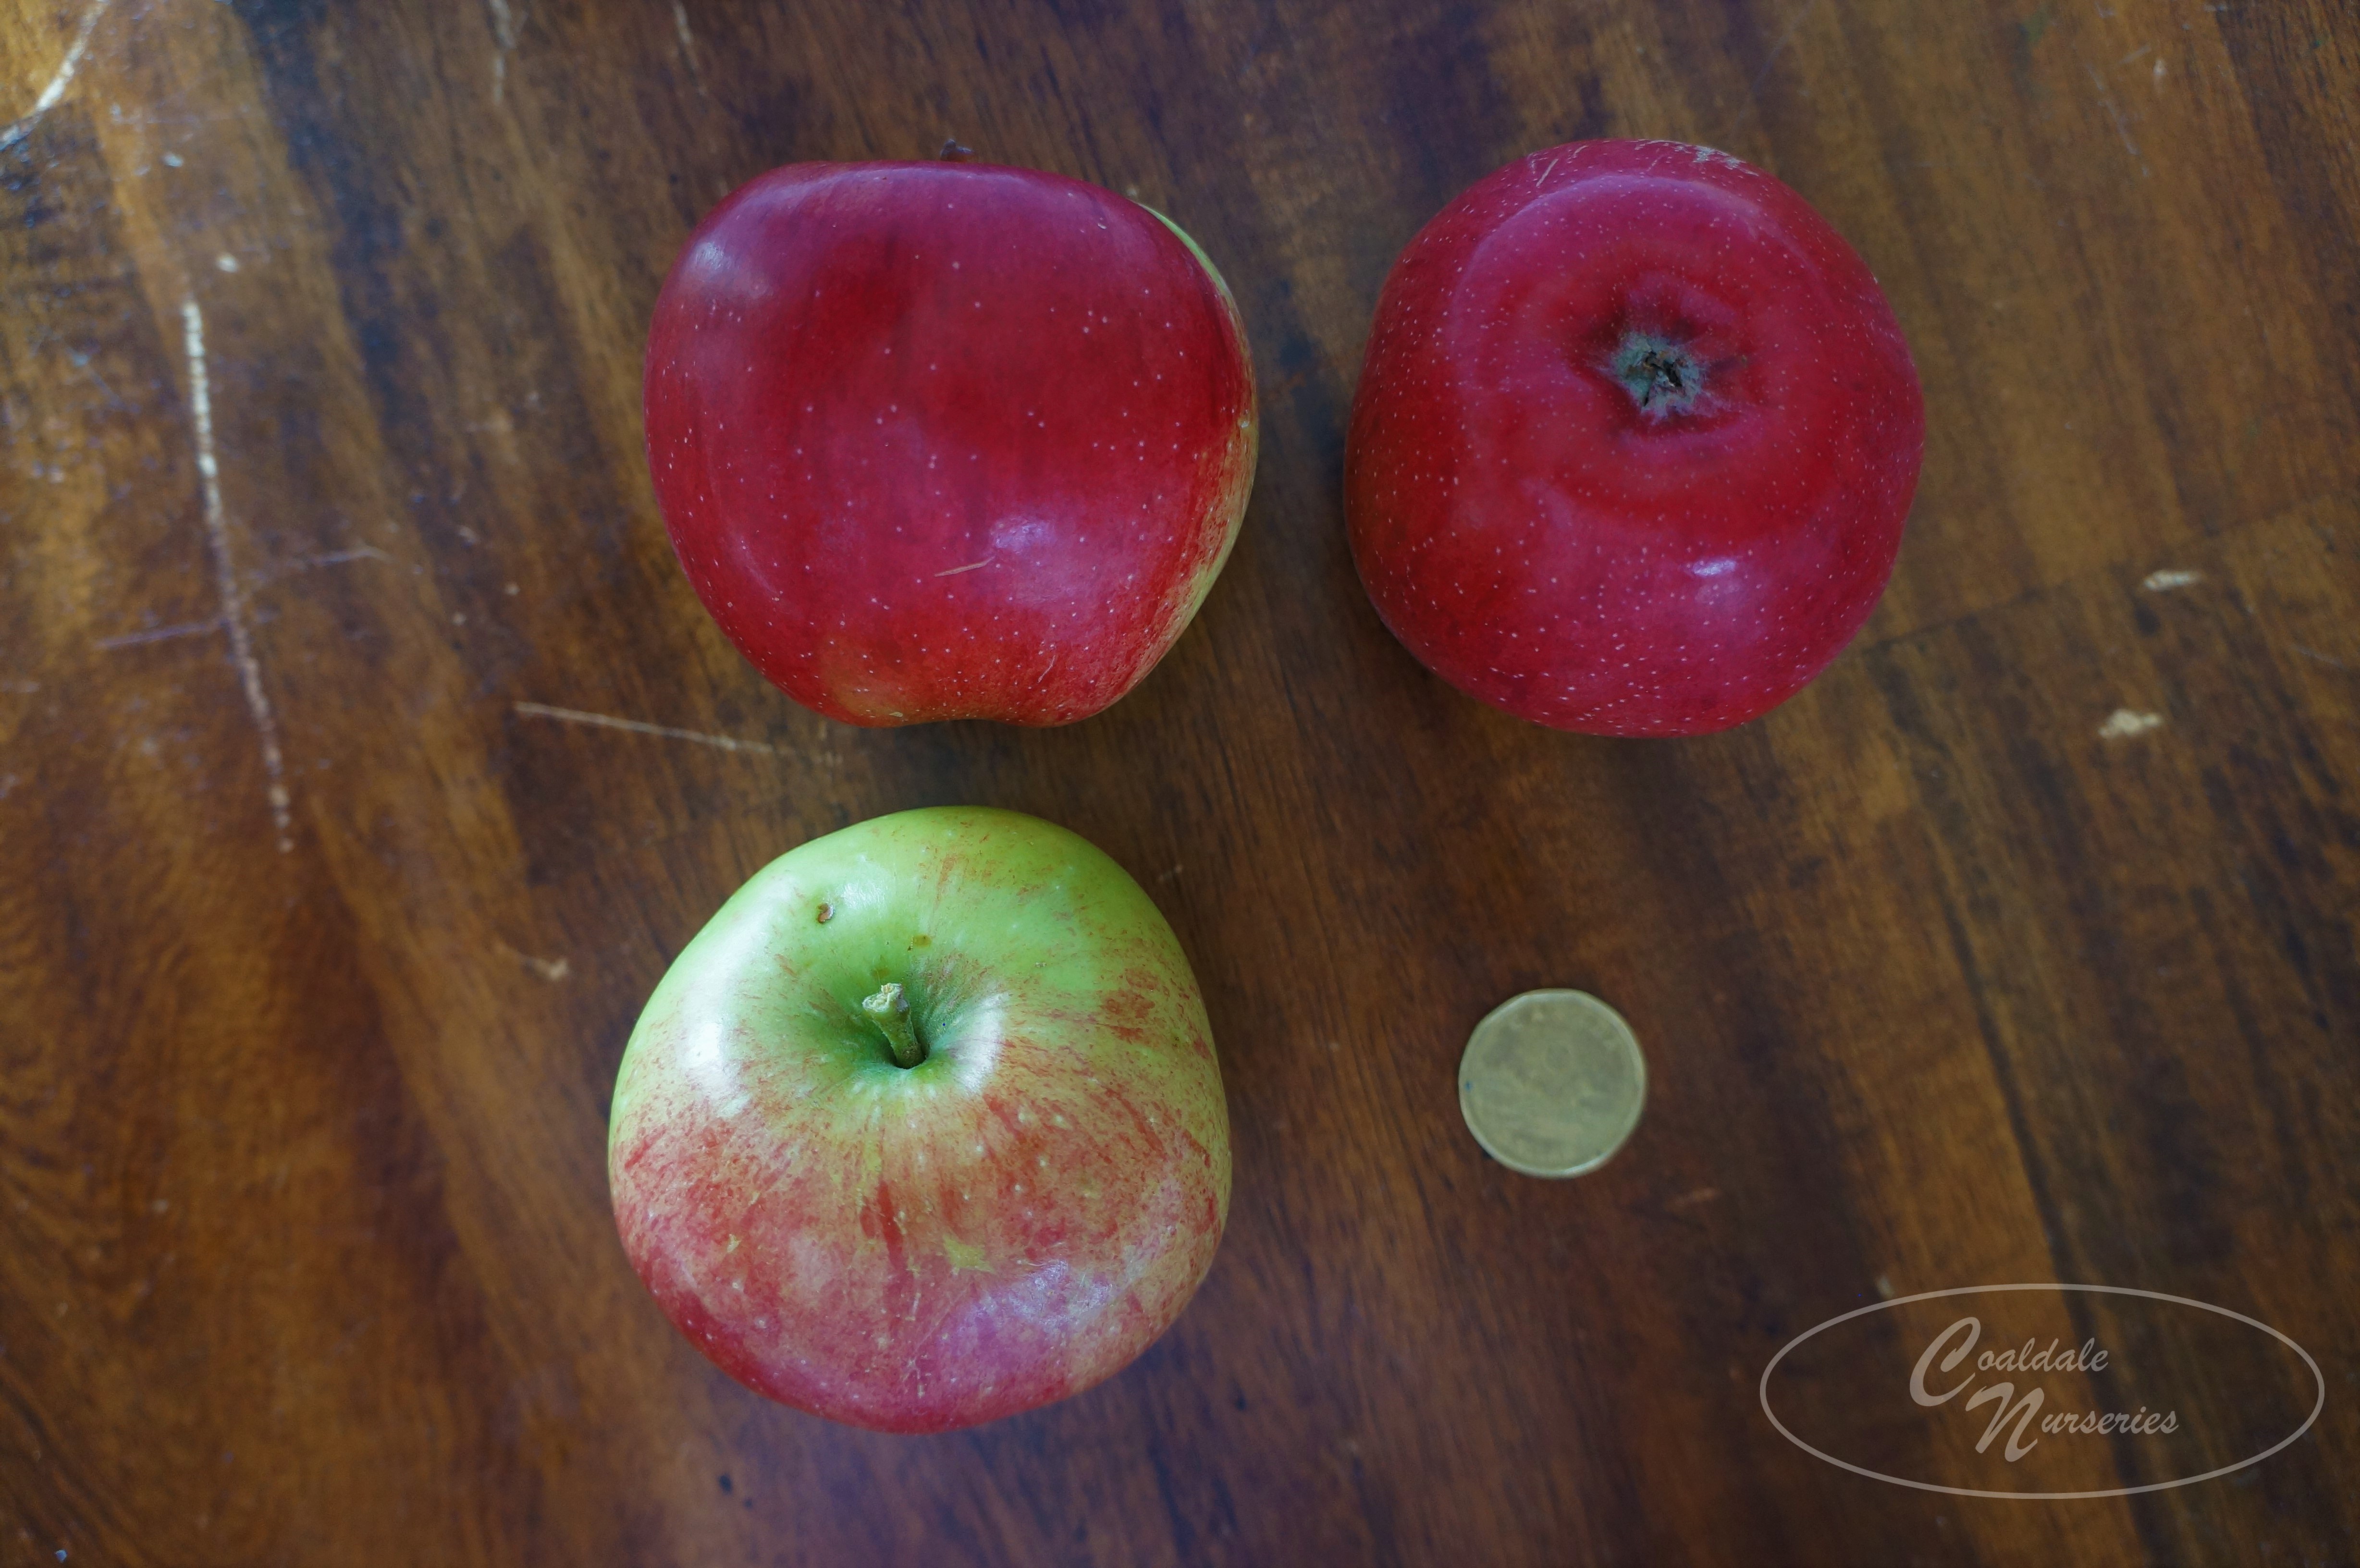 Haralson Apple Image